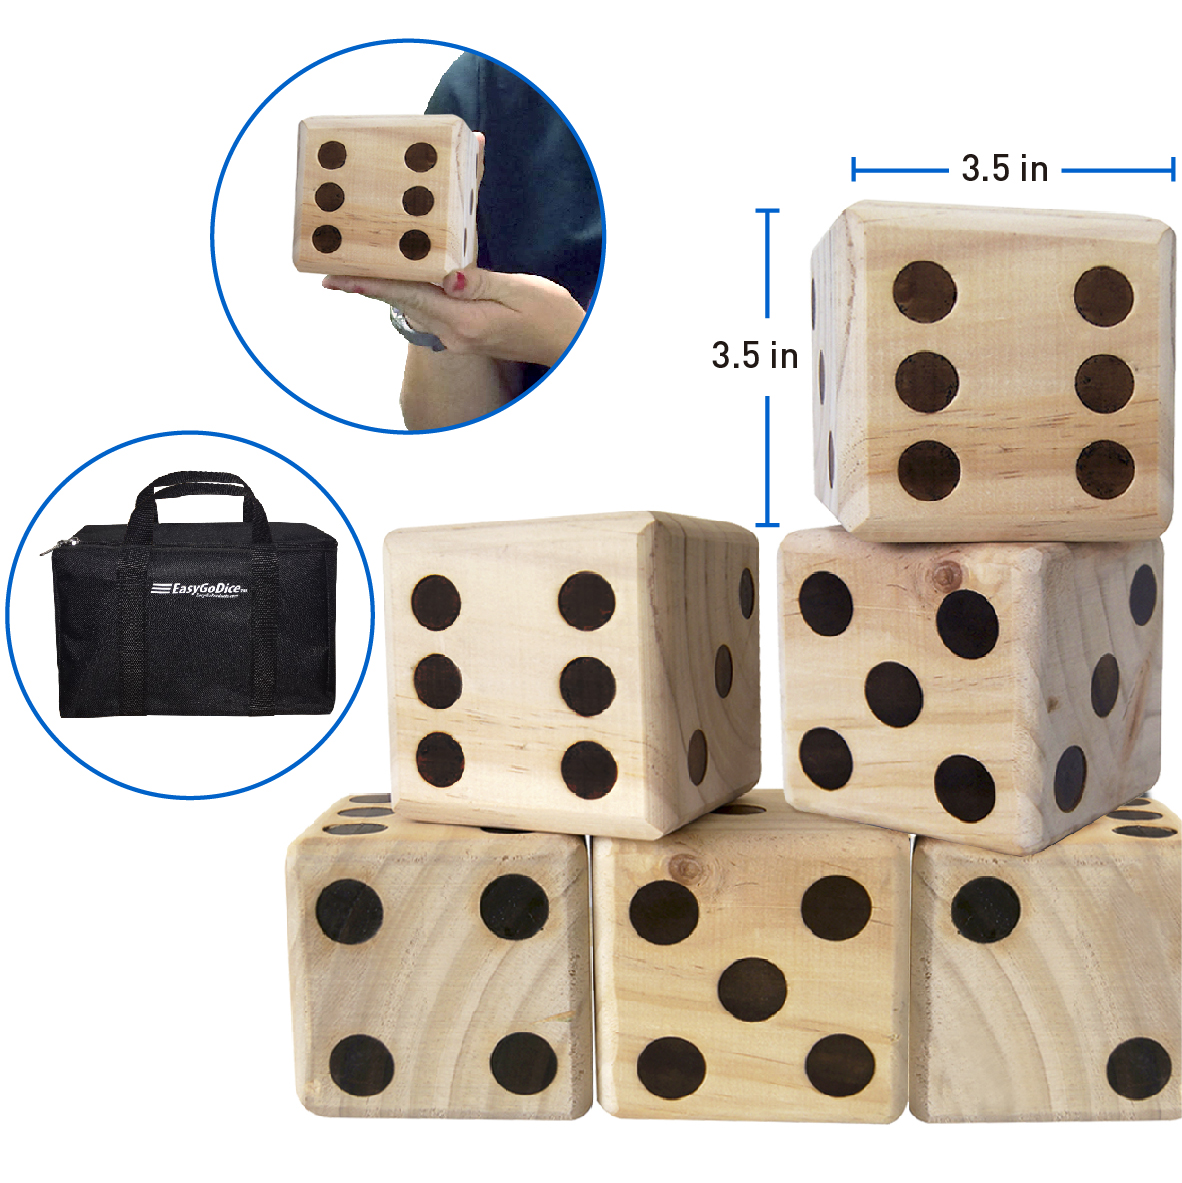 LARGE DICE GAME – GIANT WOODEN YARD GAME SET – DICE WITH BAG - KIDS & ADULTS – GREAT LAWN AND FAMILY GAME